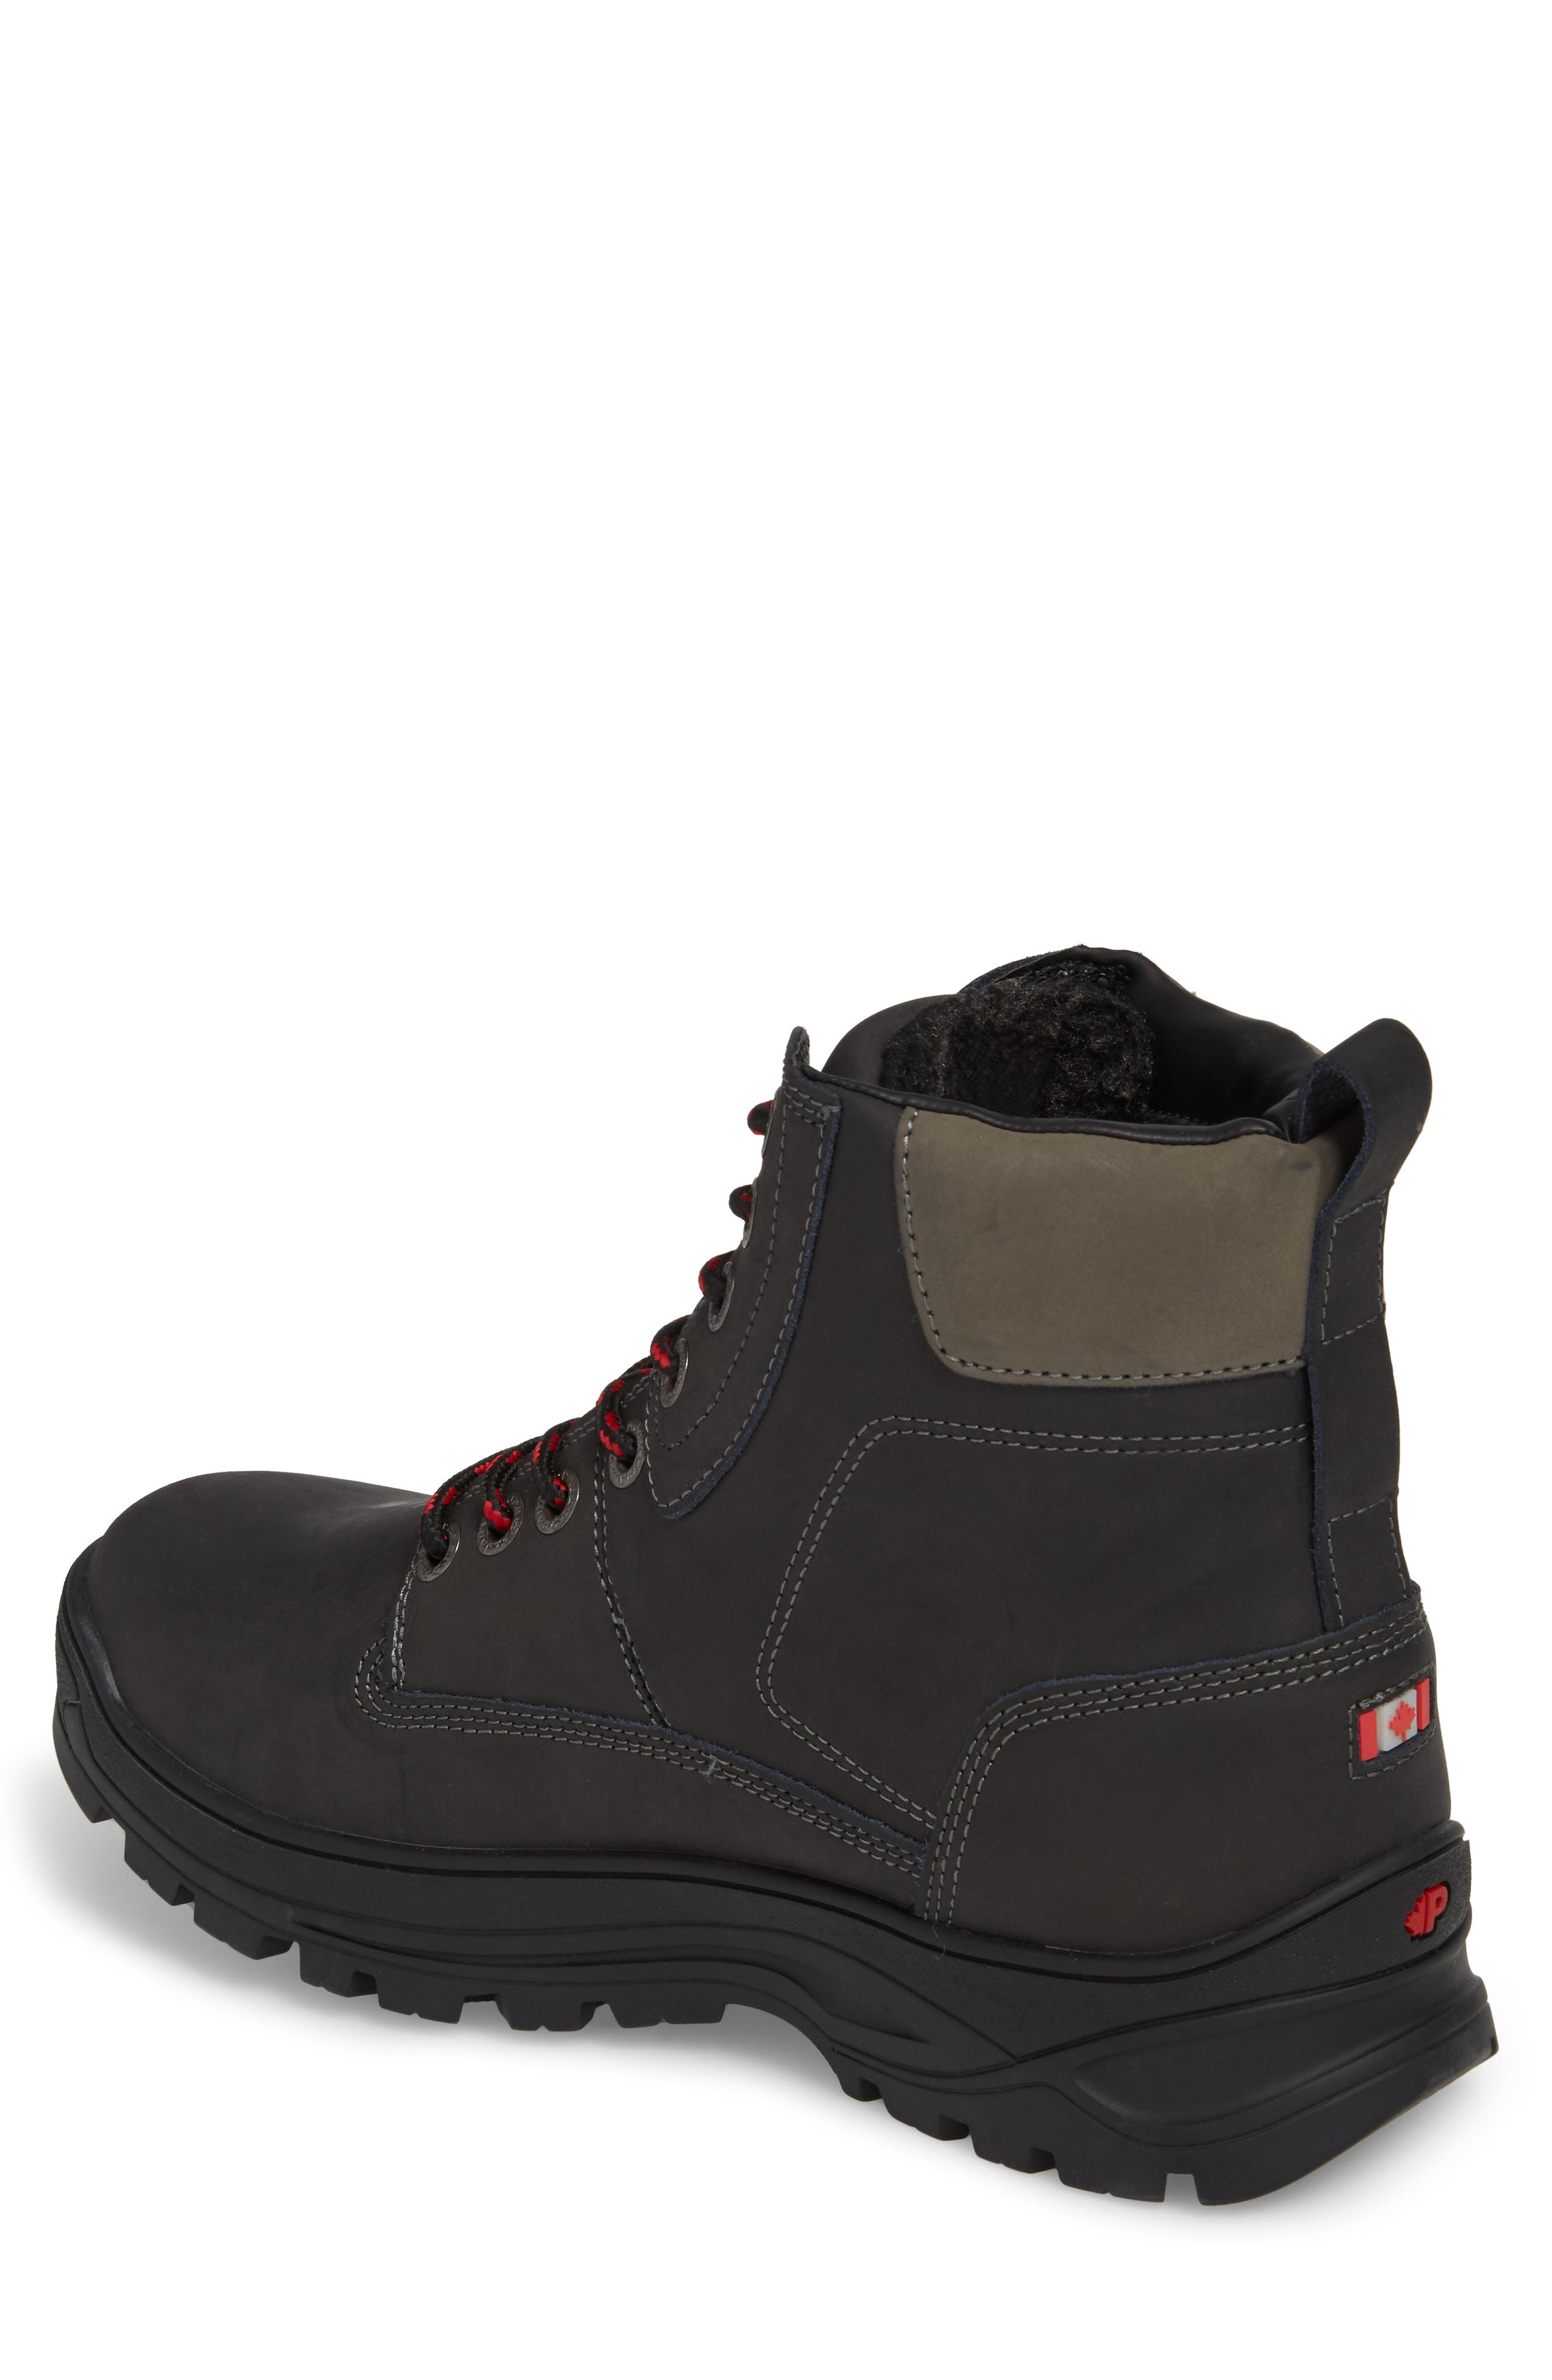 Imani Waterproof Insulated Boot,                             Alternate thumbnail 3, color,                             001